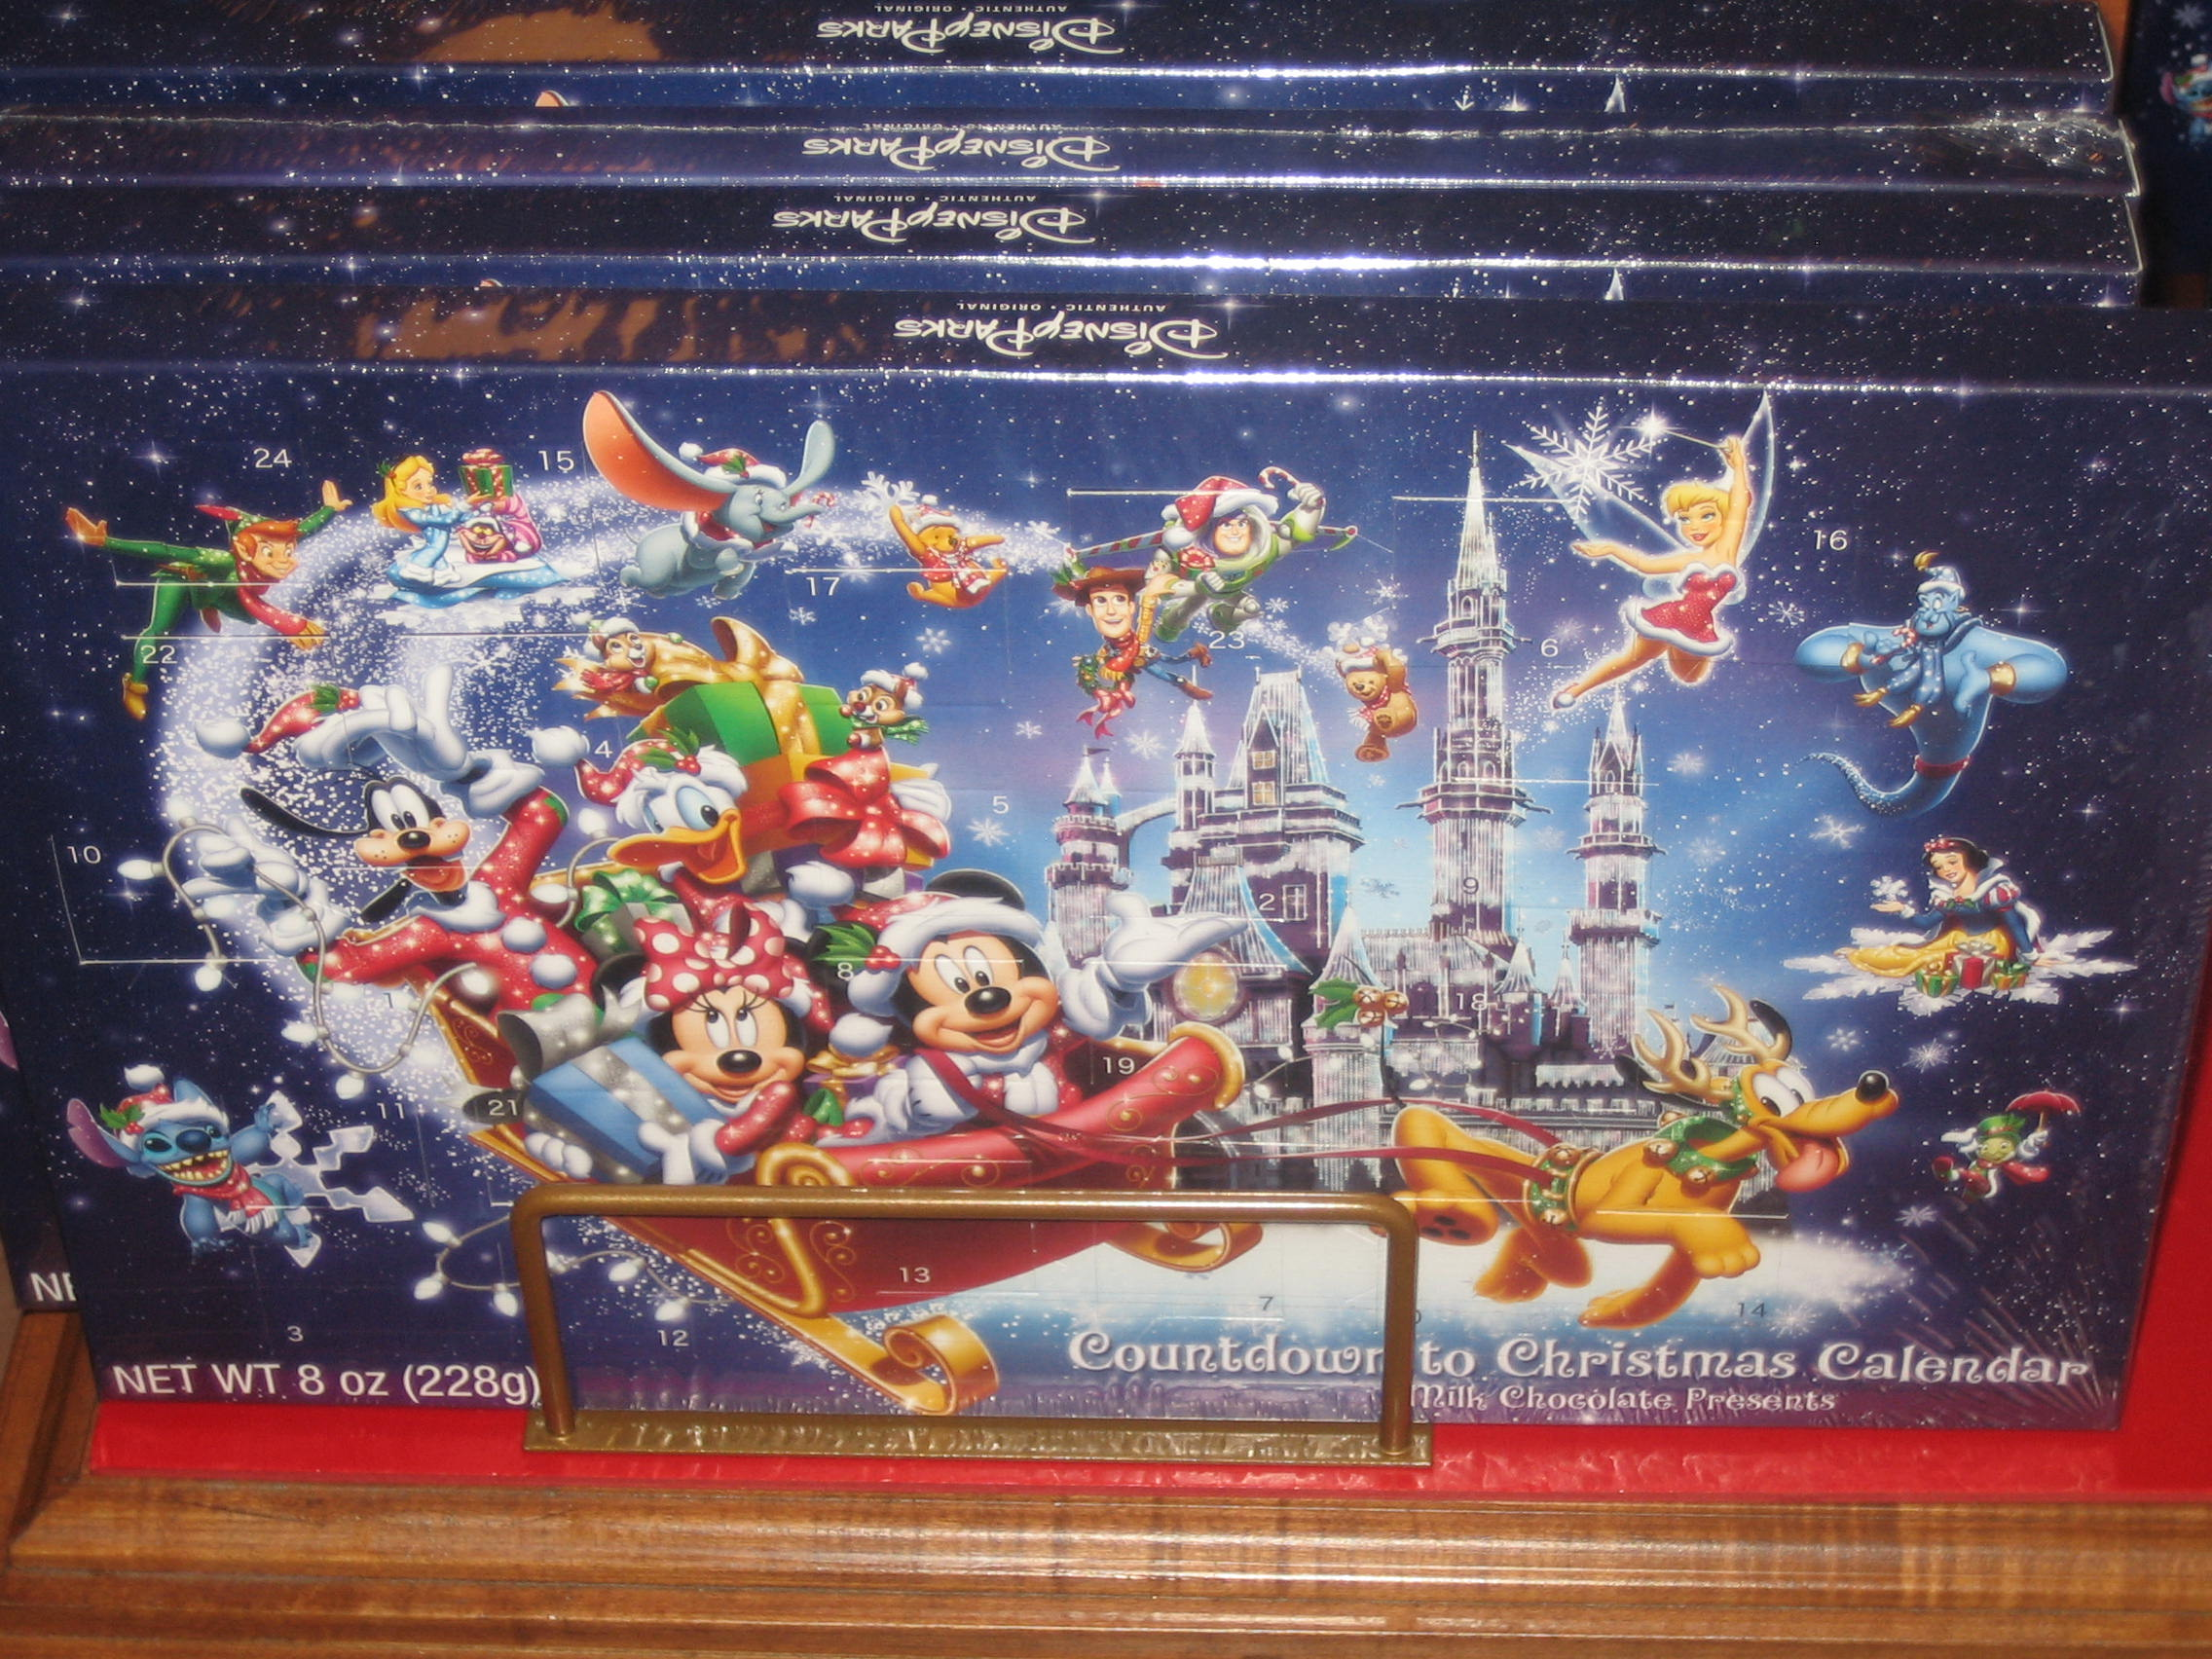 Countdown To Christmas Chocolate Calendar Image 1231